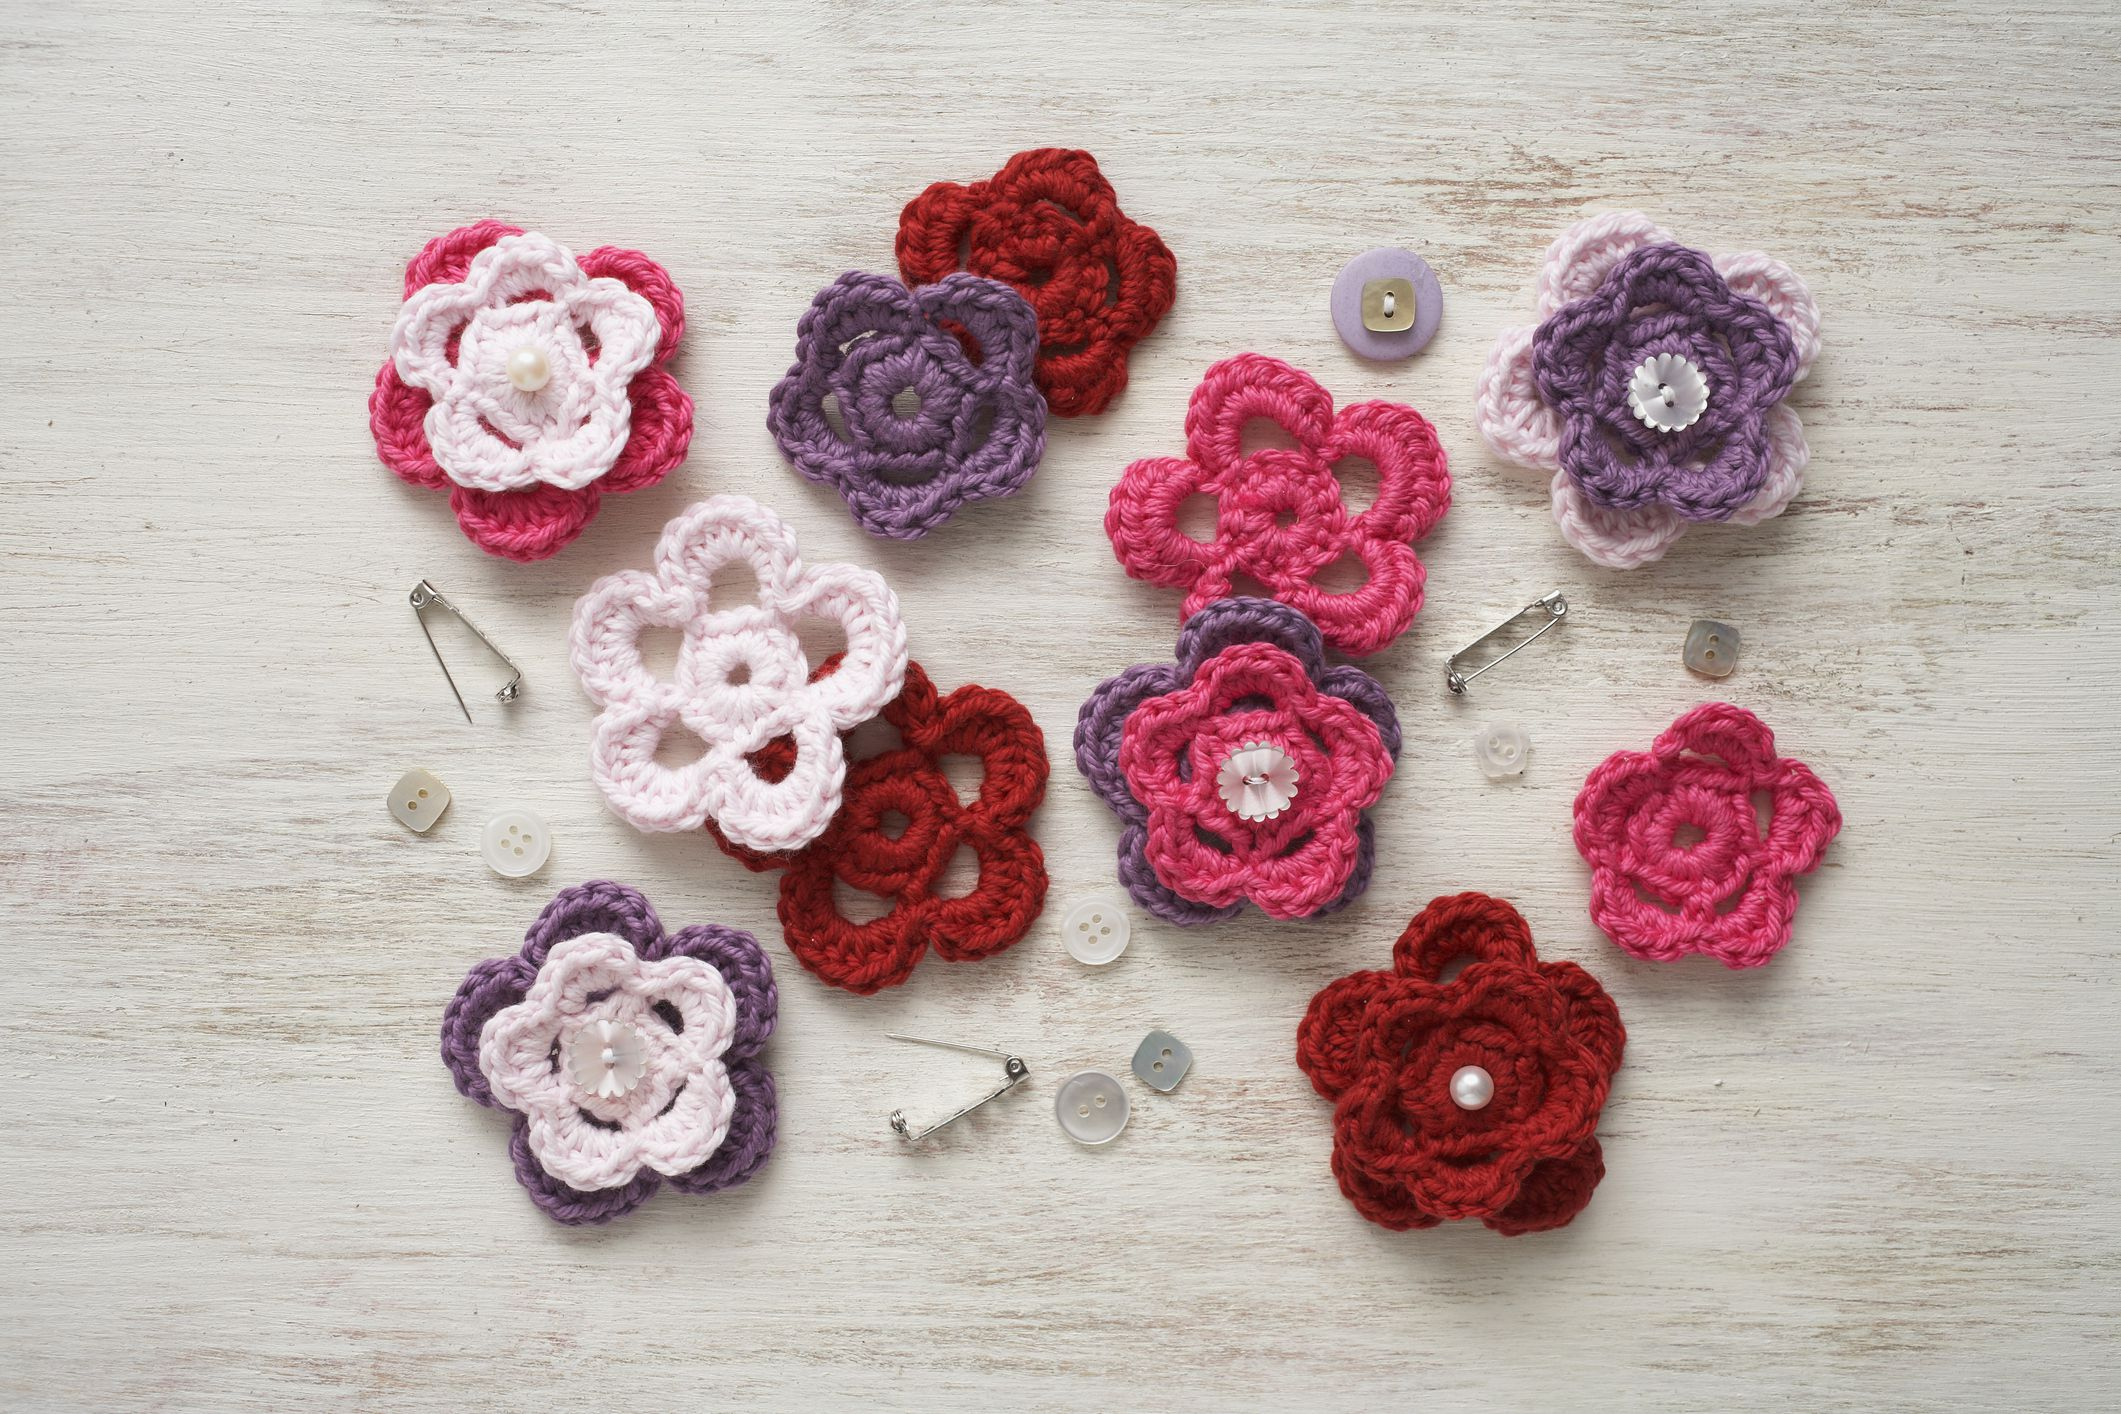 Free and Easy Crochet Patterns to Make Afghans, Scarves, and More